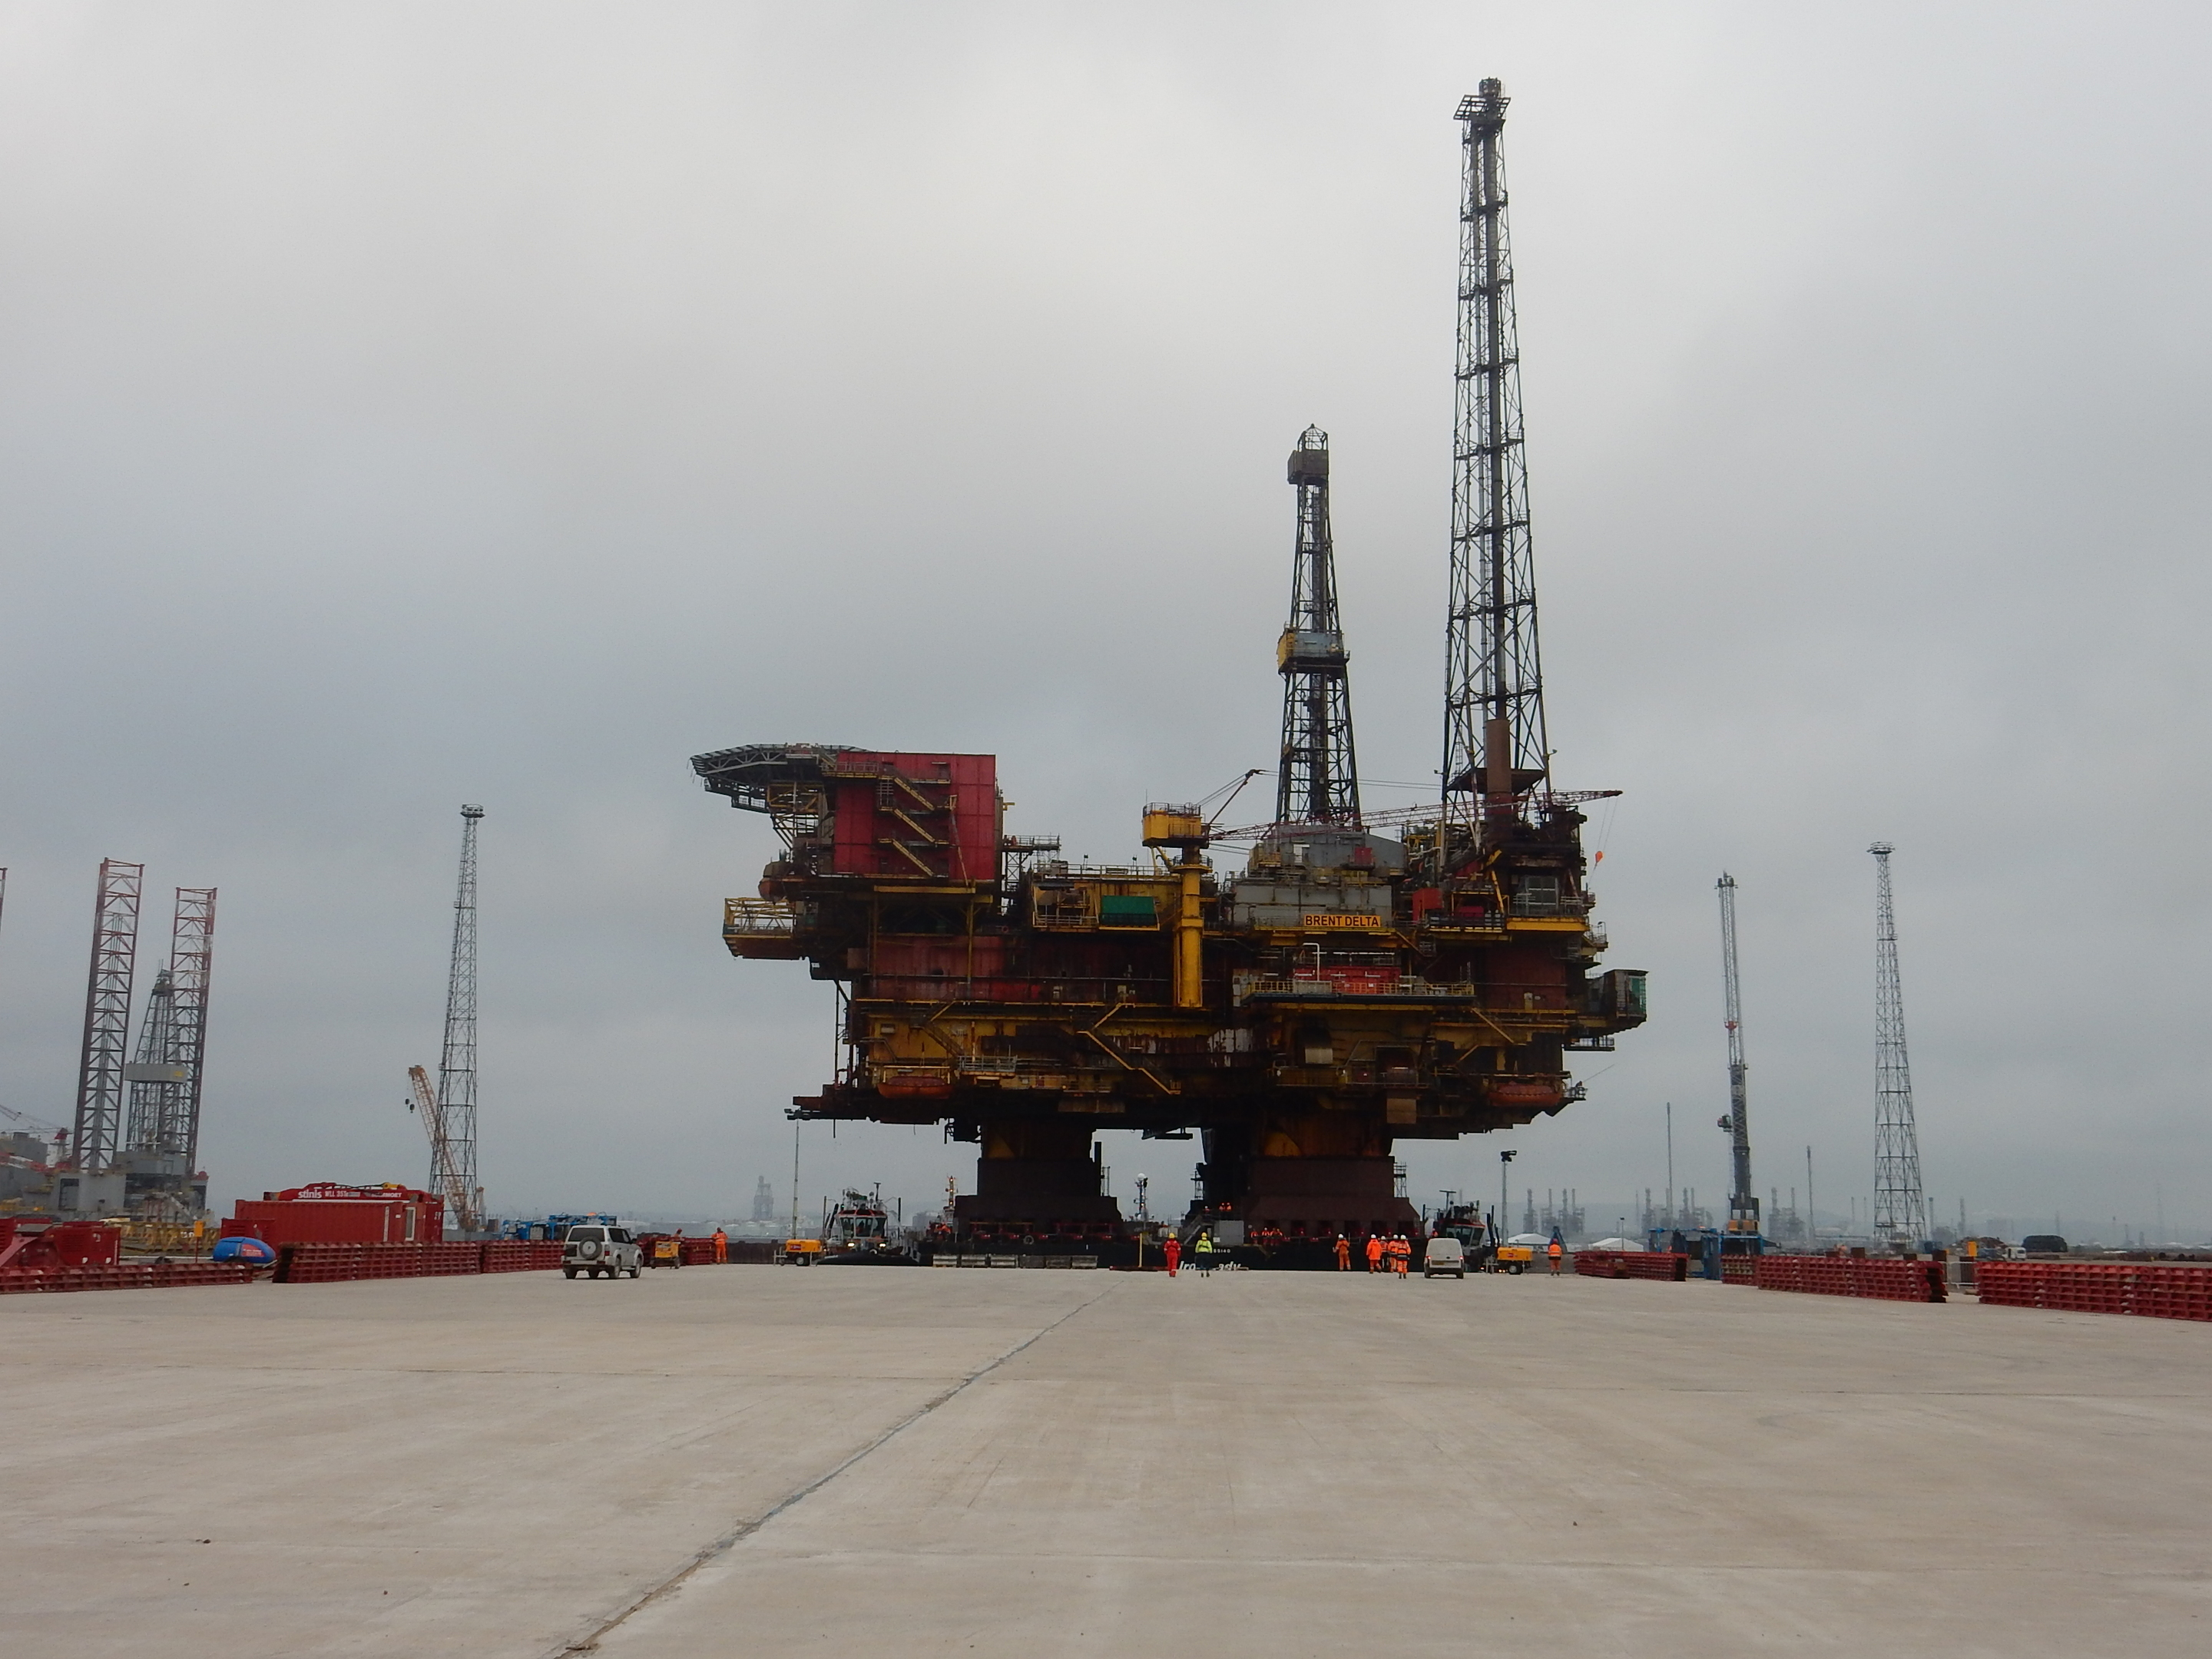 Shell's Brent Delta prior to dismantling work commencing last August.